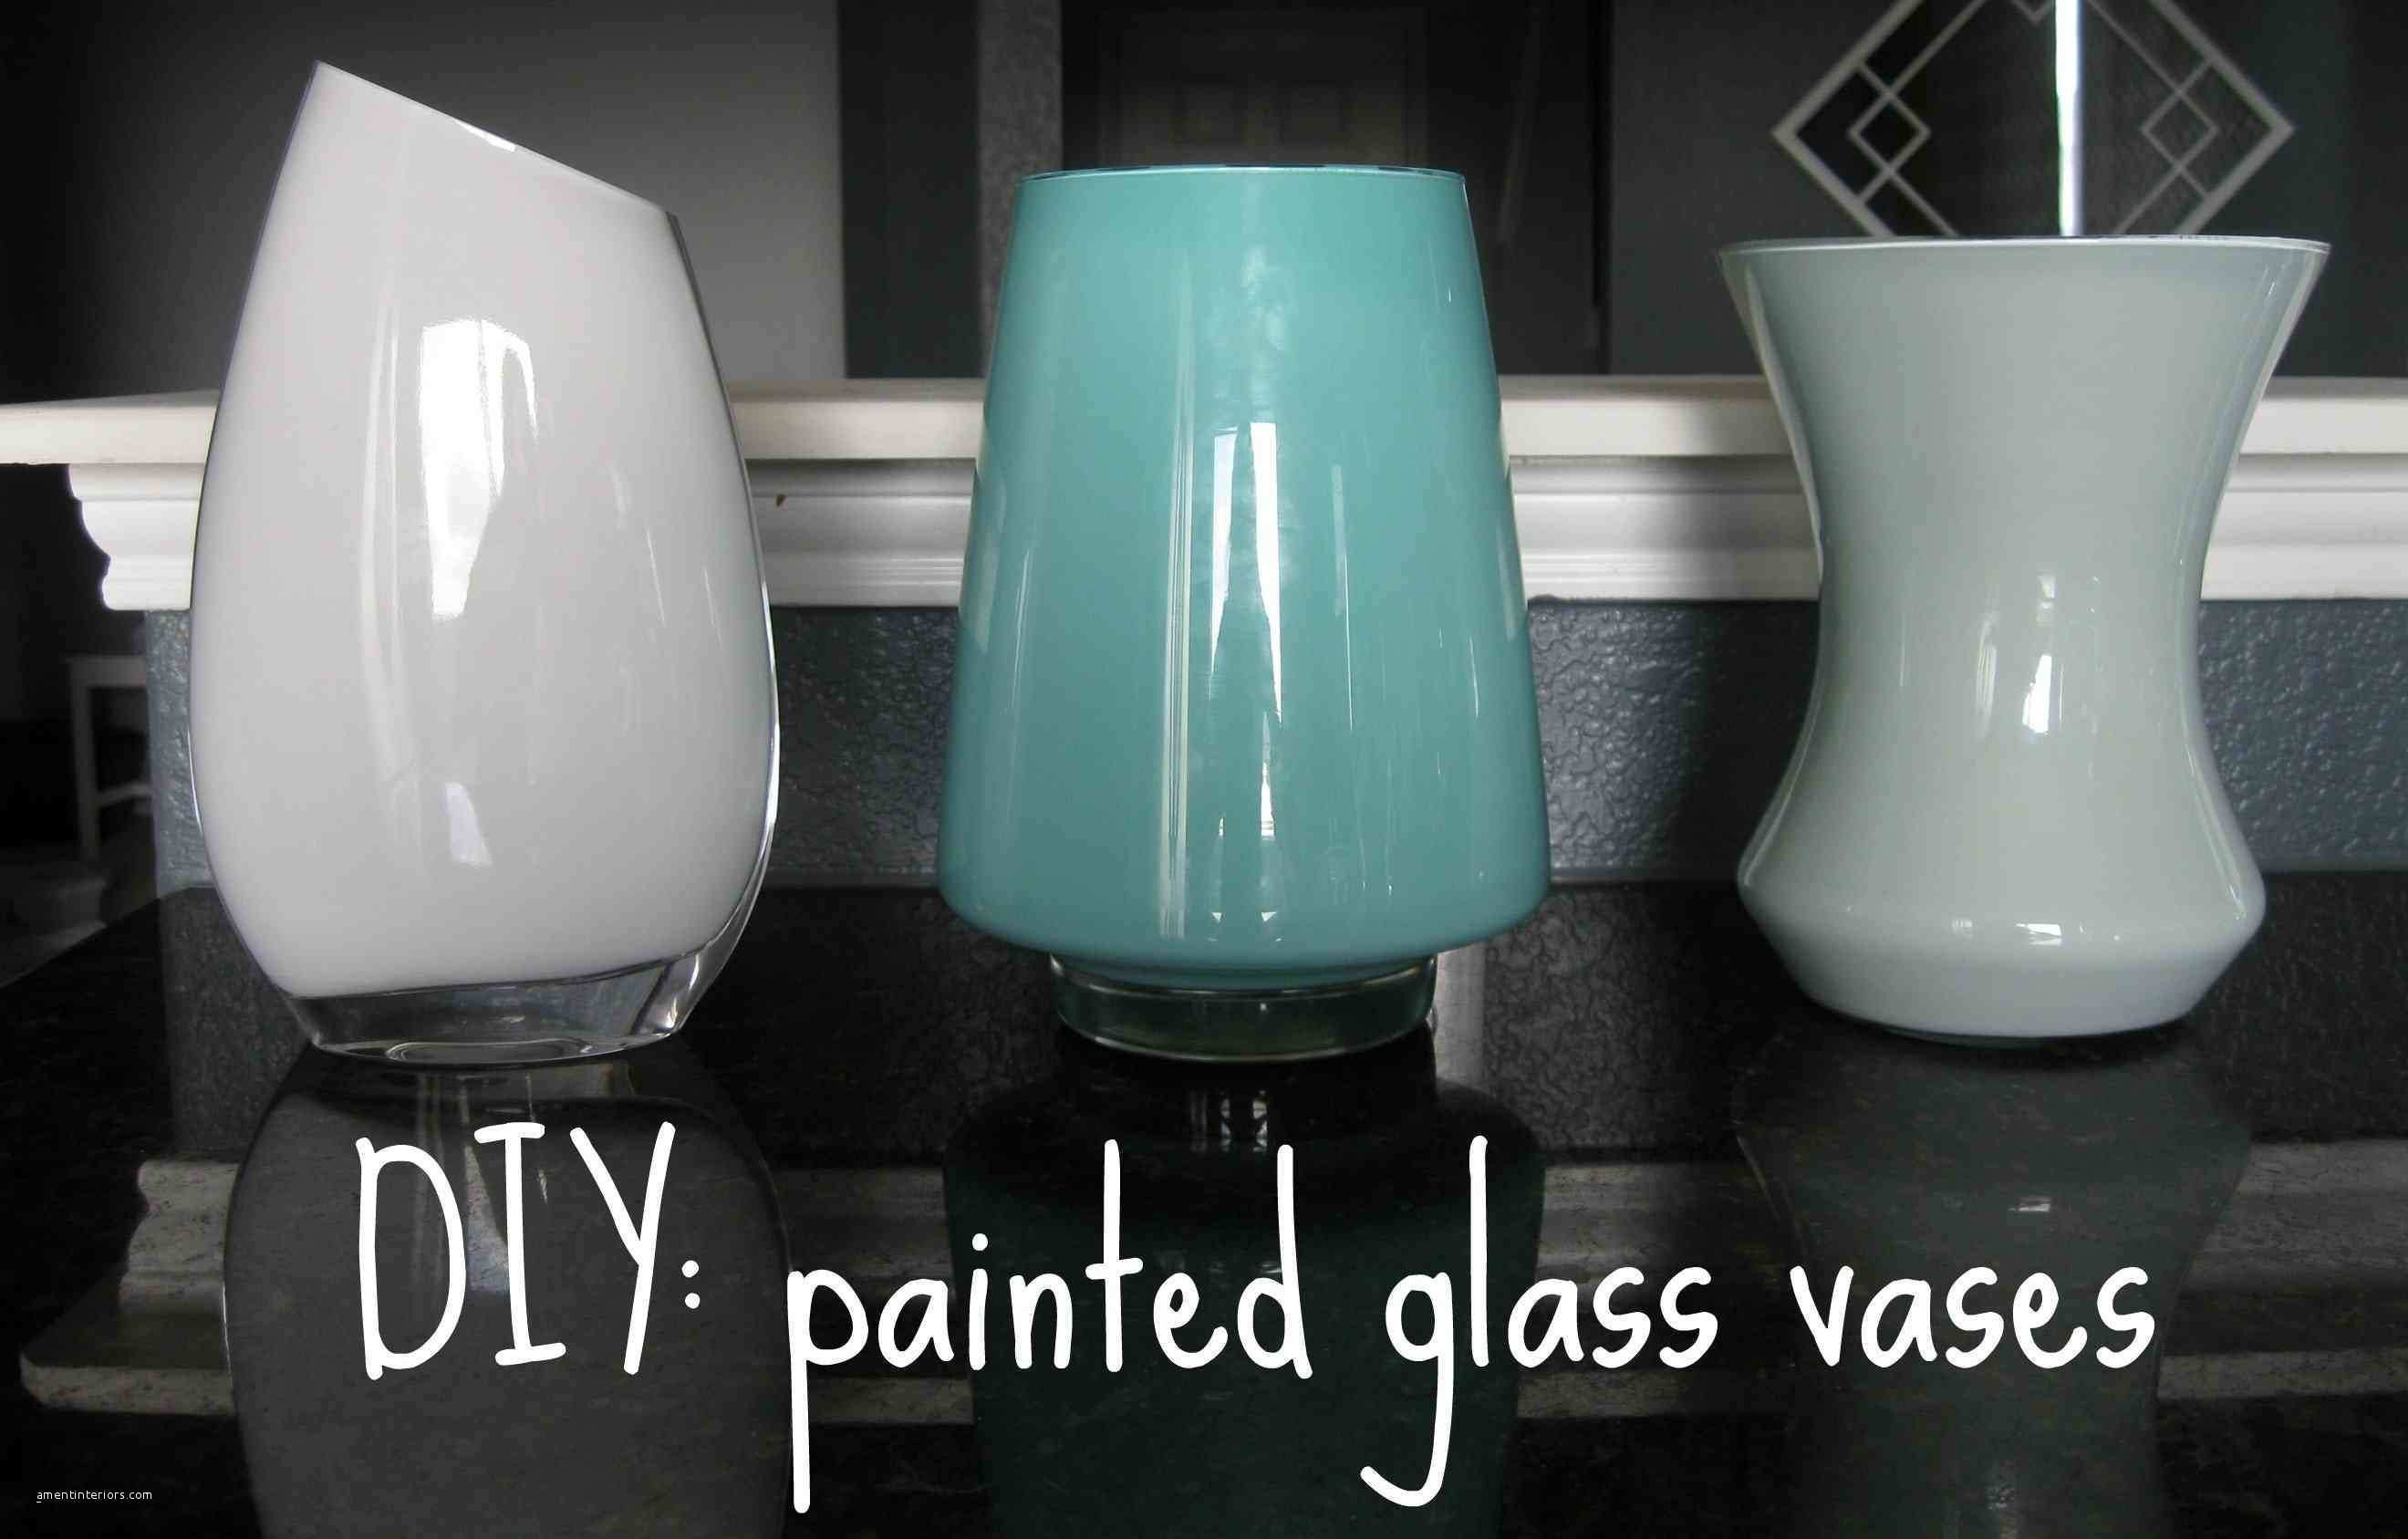 small gray vase of charming pictures to paint styling up your h vases how to paint in cozy pictures to paint and kitchen coloring new inside paint new h vases paint vase i